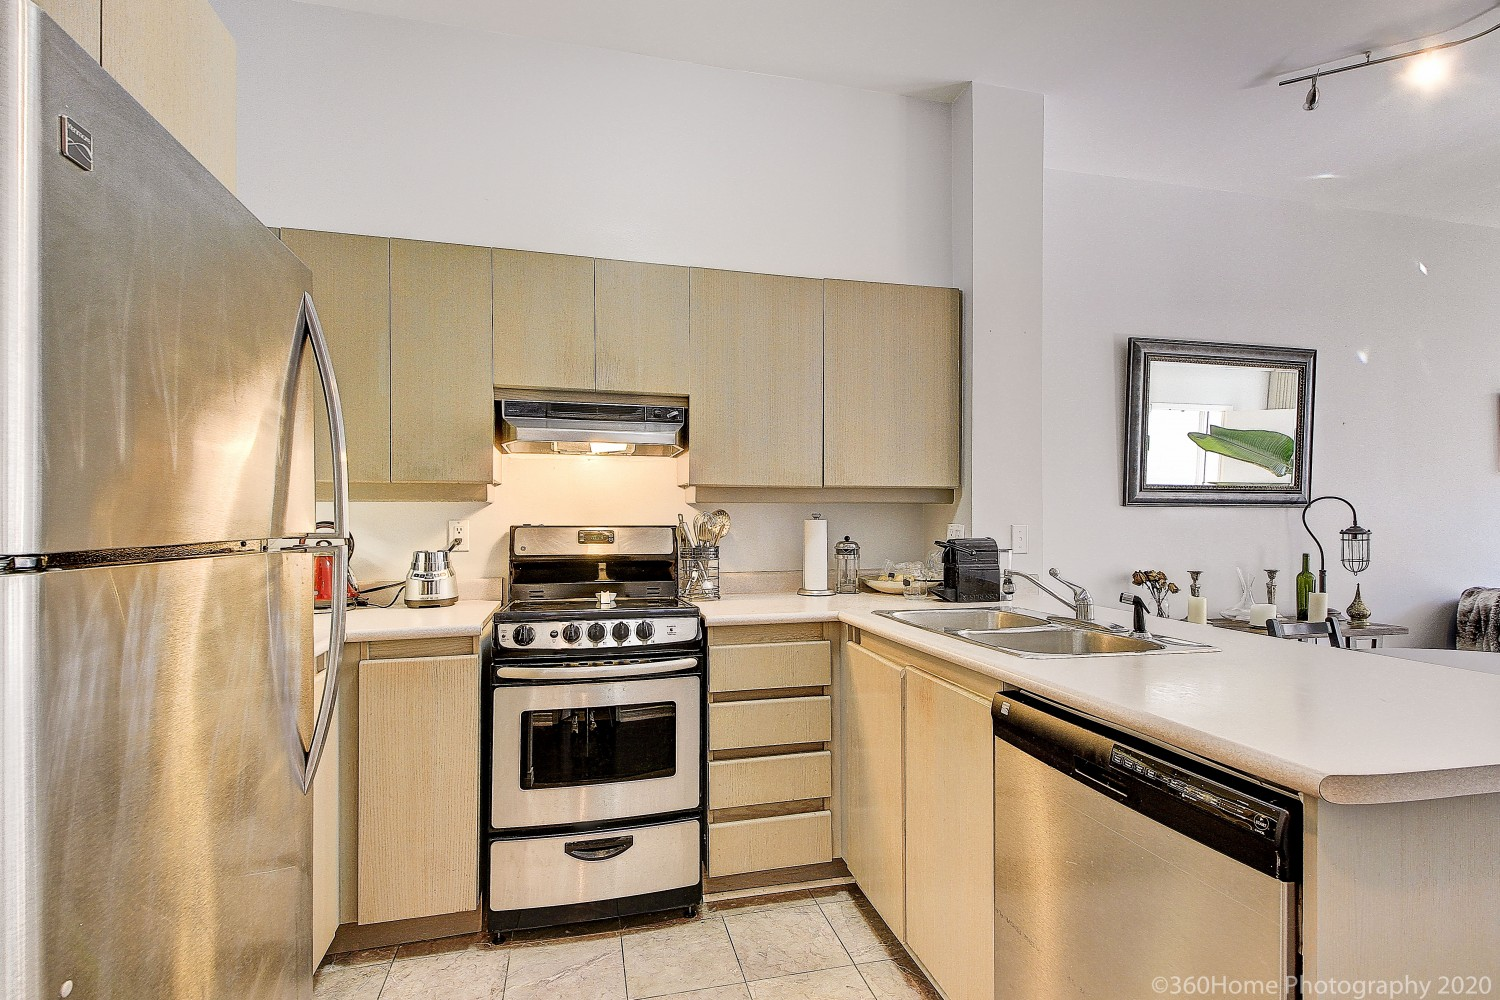 Somewhat old condo kitchen with beige cabinets, marble tiles and stainless-steel stove and fridge.